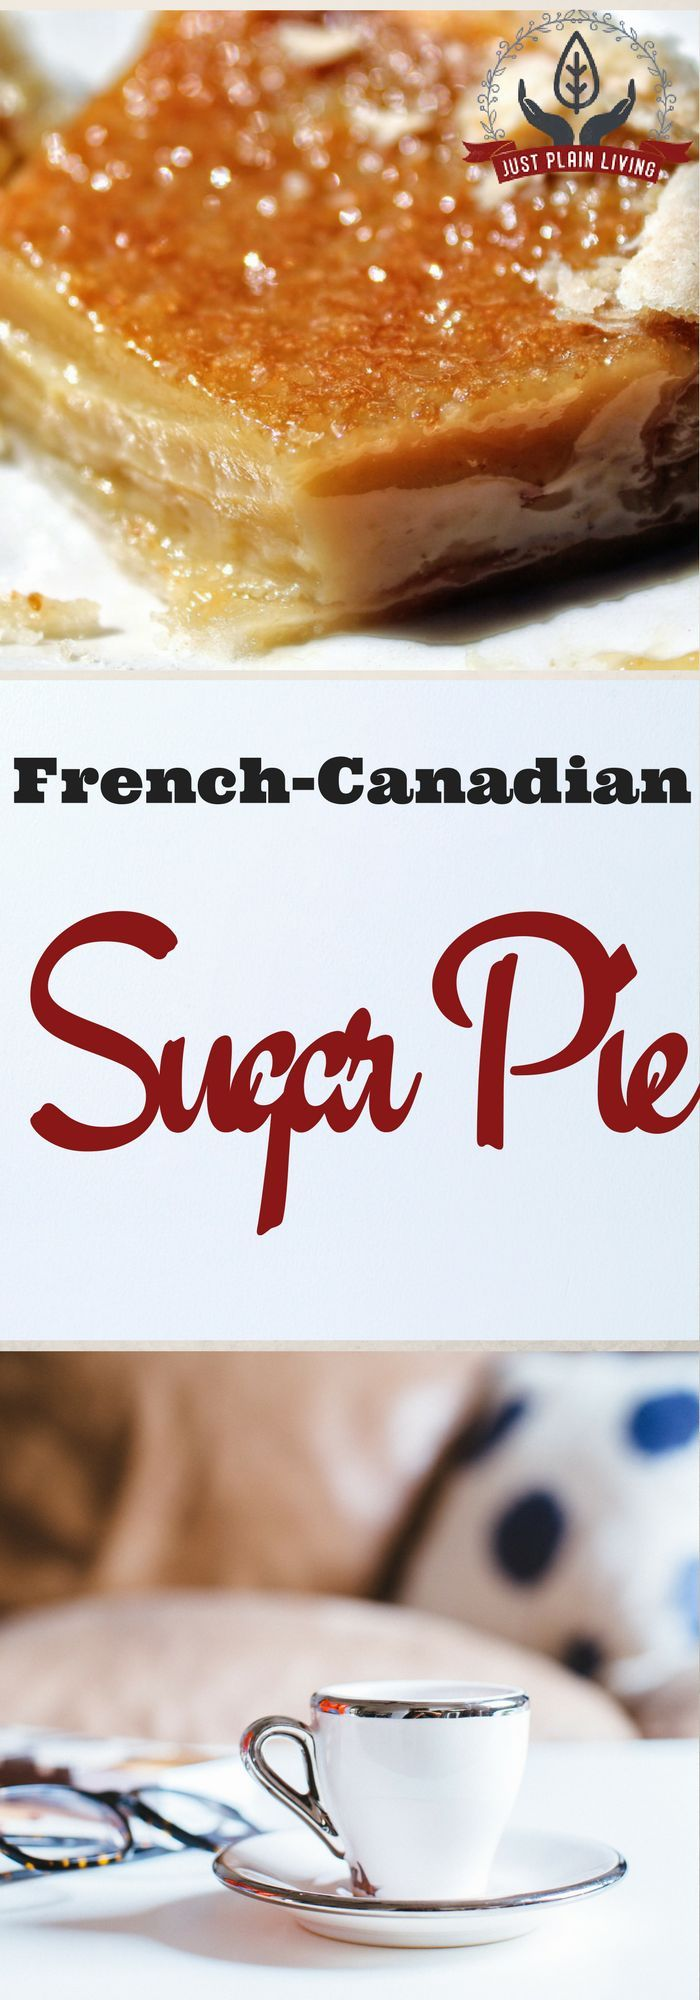 If you have never had French Canadian sugar pie, you need to try this. Cut it in tiny slices and savour every moment of this intensely sweet rich treat. via @justplainmarie